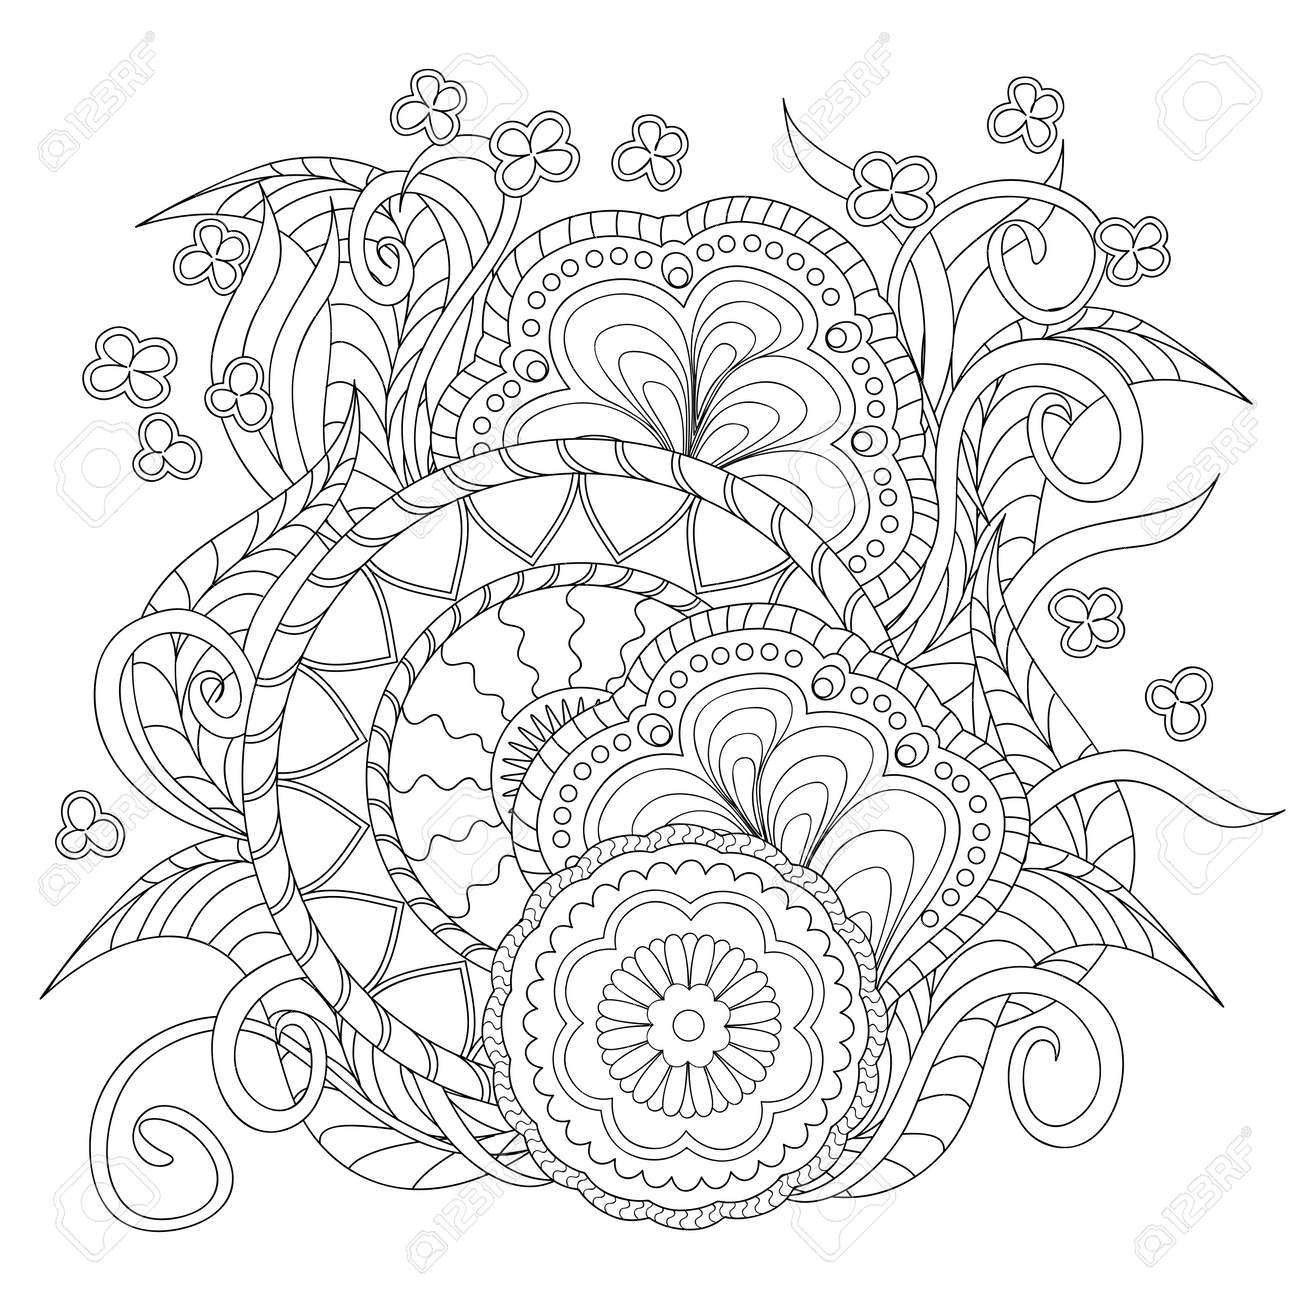 Image For Adults Coloring Page Vector Illustration Hand Drawn Decorated With Flowers And Mandalas Zentangle Style Henna Paisley Mehndi